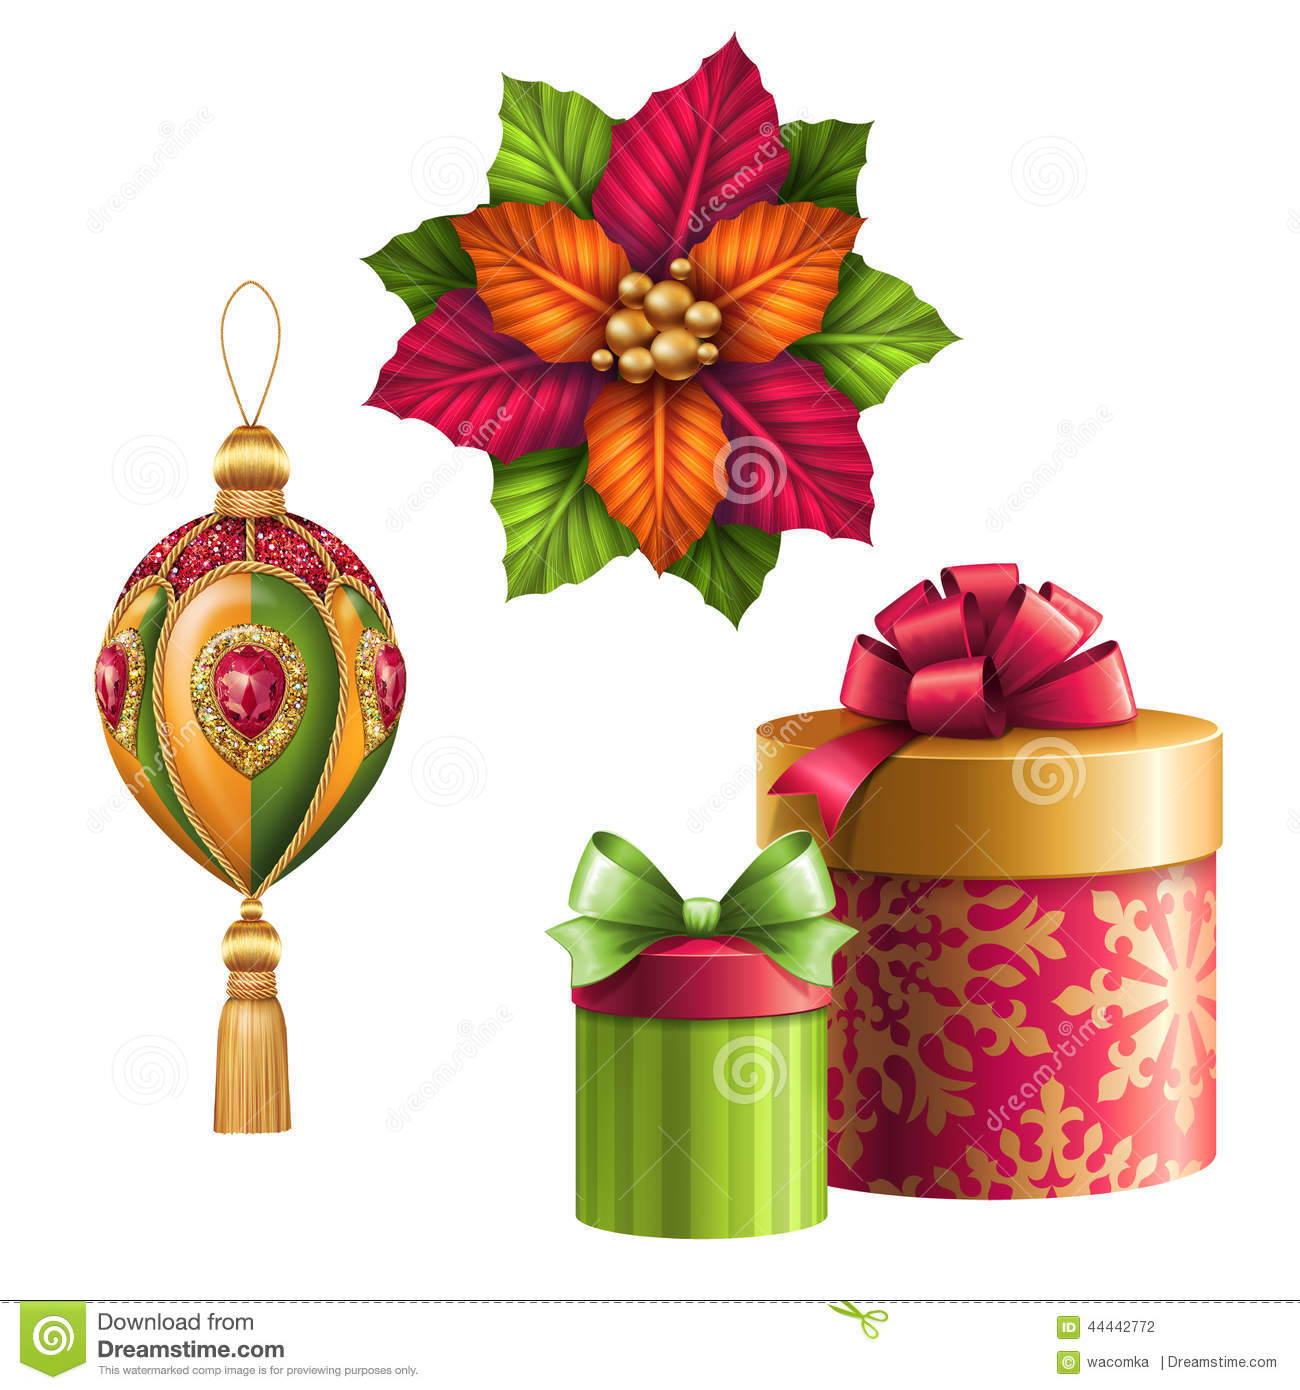 Christmas Holiday Clip Art Royalty Free Stock Photo - Image: 7007805